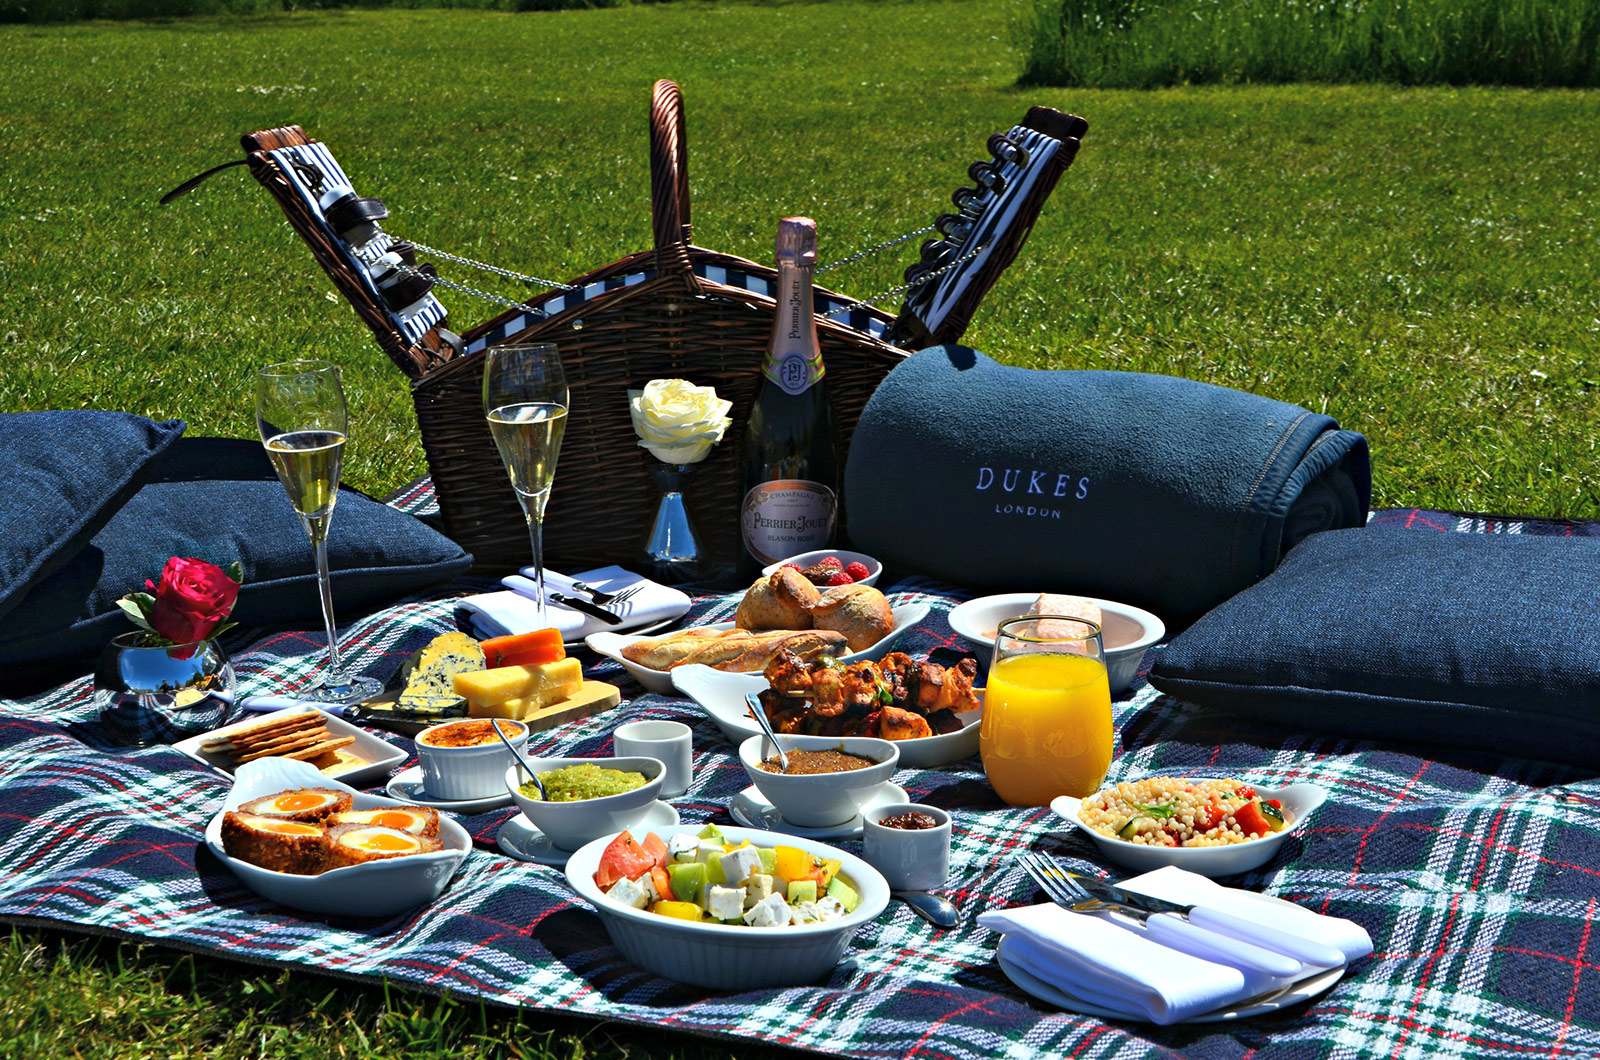 Gourmet Picnics In The Park By Dukes London Chartwell